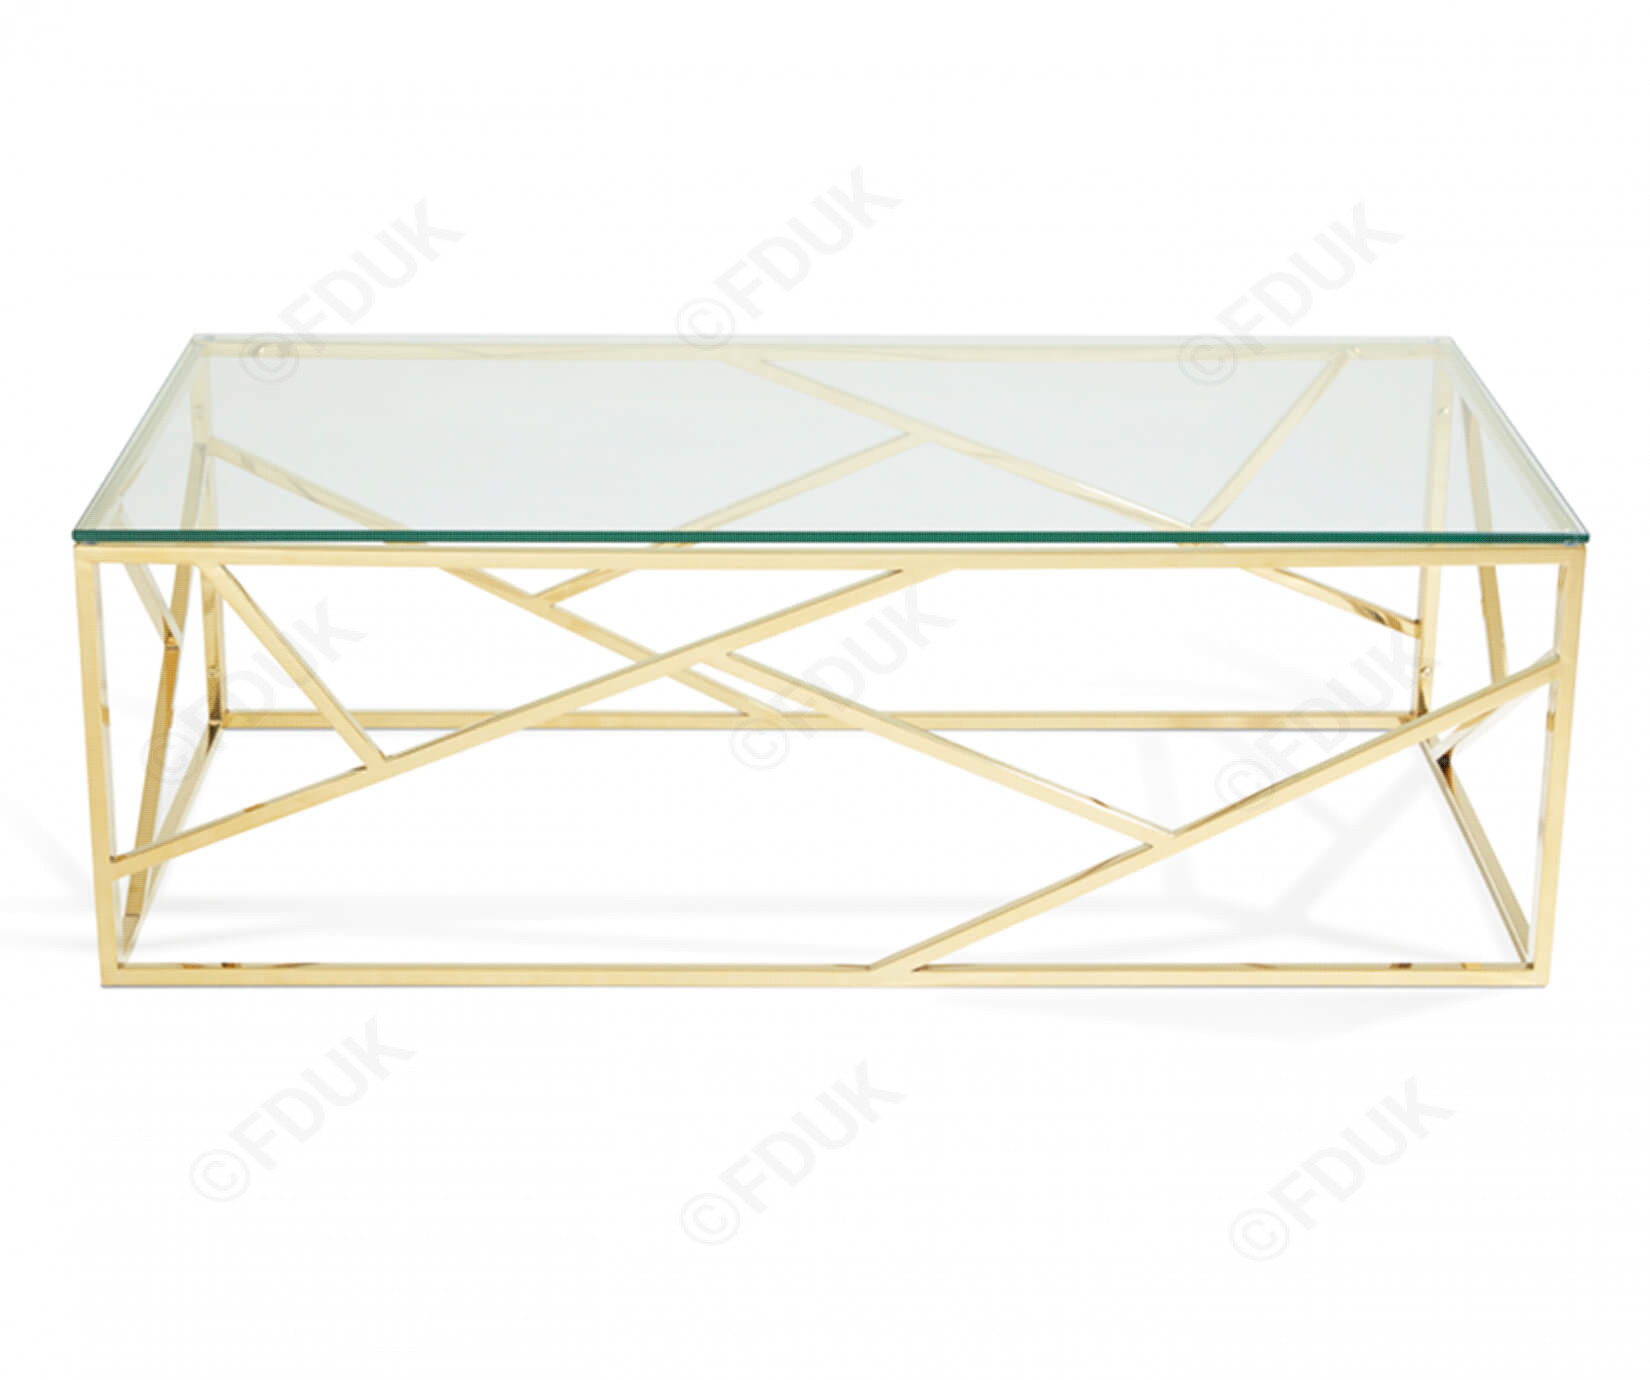 Serene Furnishings Phoenix Gold Frame With Clear Glass Top Coffee pertaining to size 1650 X 1380